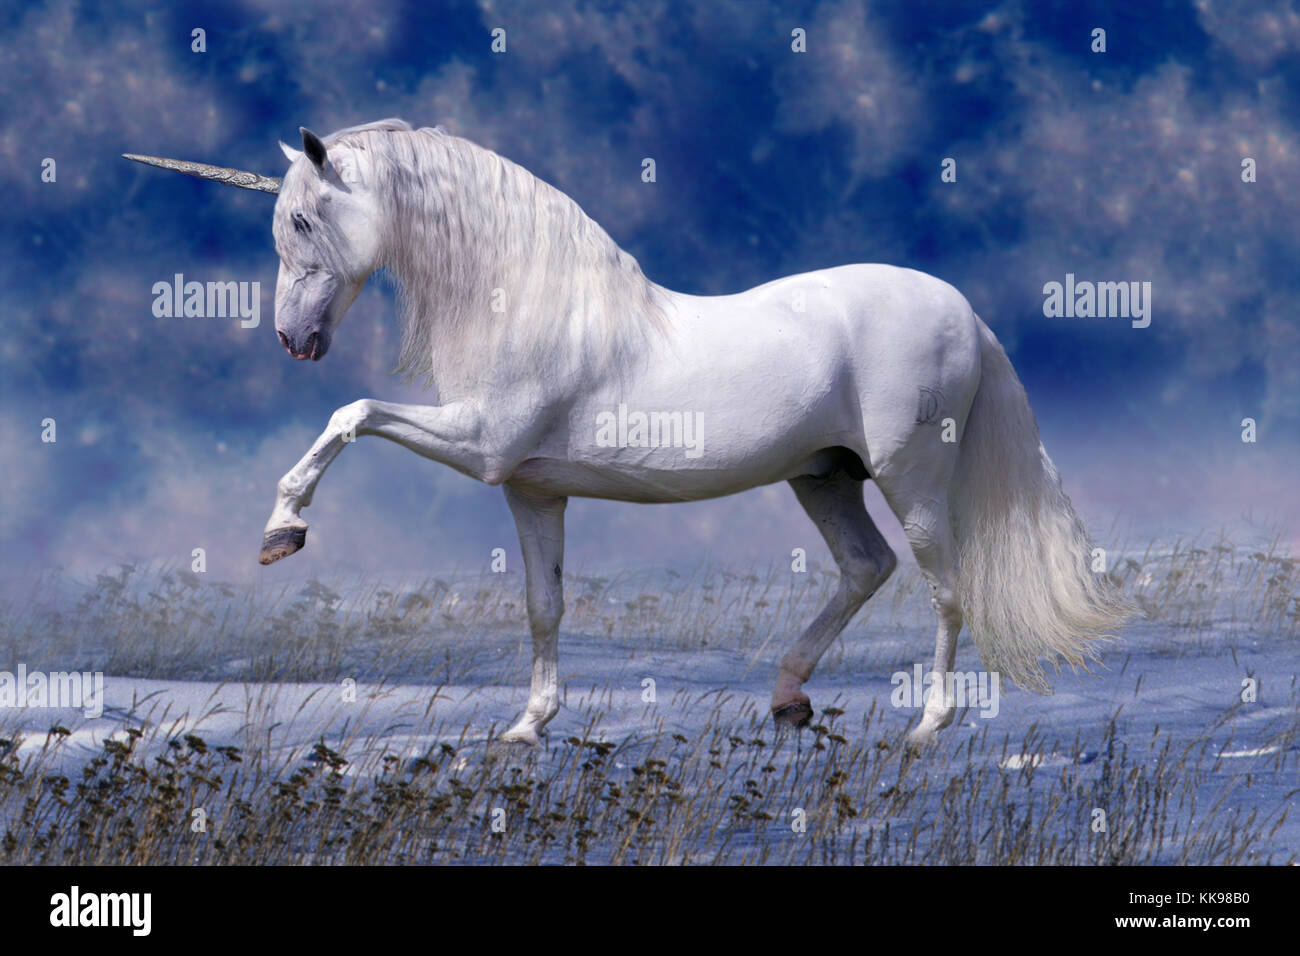 A beautiful, mystical white unicorn stallion stands in the snow with a dramatic star filled sky behind him. - Stock Image